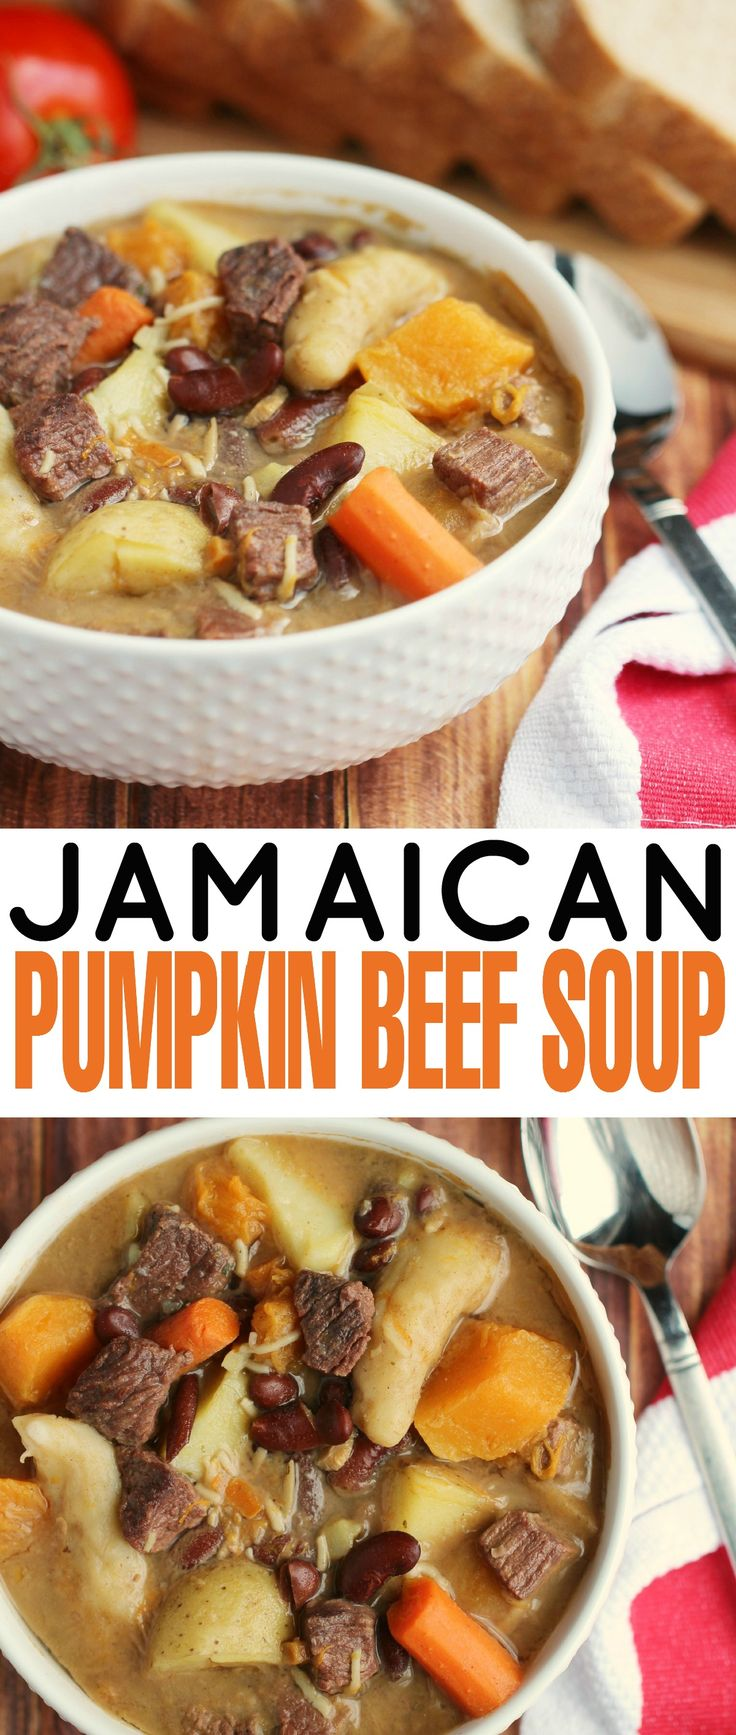 This Jamaican Pumpkin Beef Soup is filled with dumplings, Jamaican Pumpkin & Beef. Perfect for a delicious and filling family dinner!